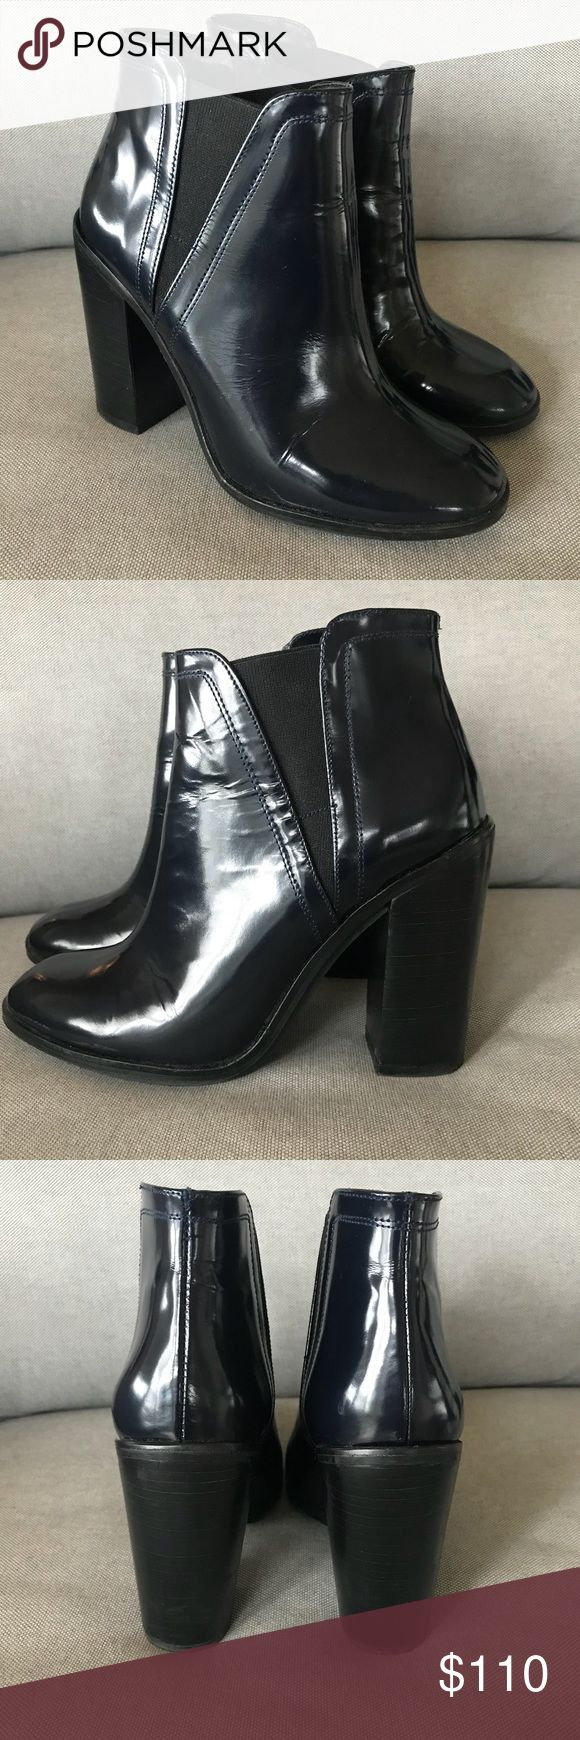 Leather Ankle Boots with Block Heel in Navy Patent leather ankle boots in almost brand new condition. The heels are about 4 inches and the elastic slits on the sides for easy slip ons. They're in a dark navy color, easy to walk in and perfect for the fall and winter seasons. Zara Shoes Ankle Boots & Booties